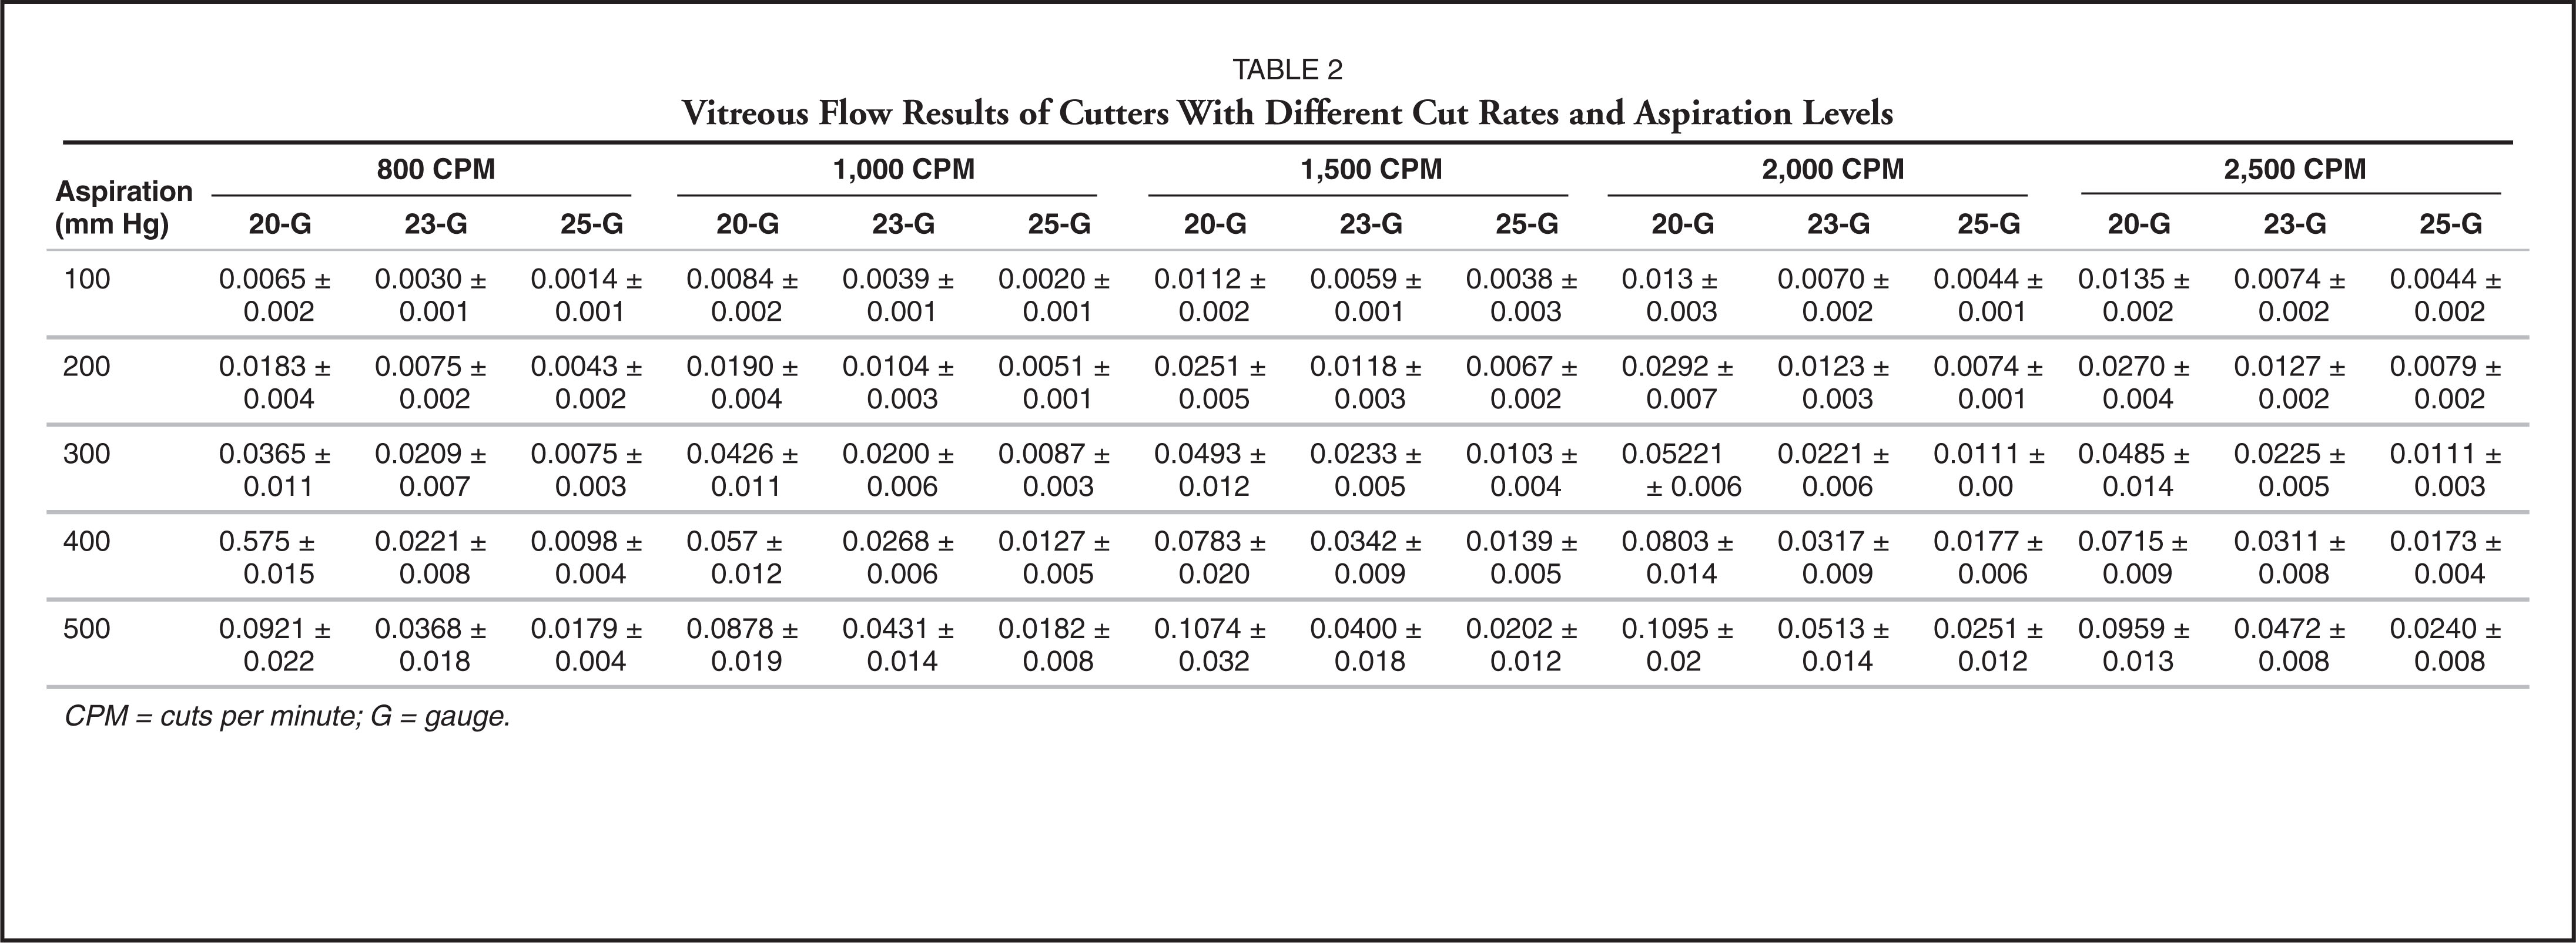 Vitreous Flow Results of Cutters with Different Cut Rates and Aspiration Levels